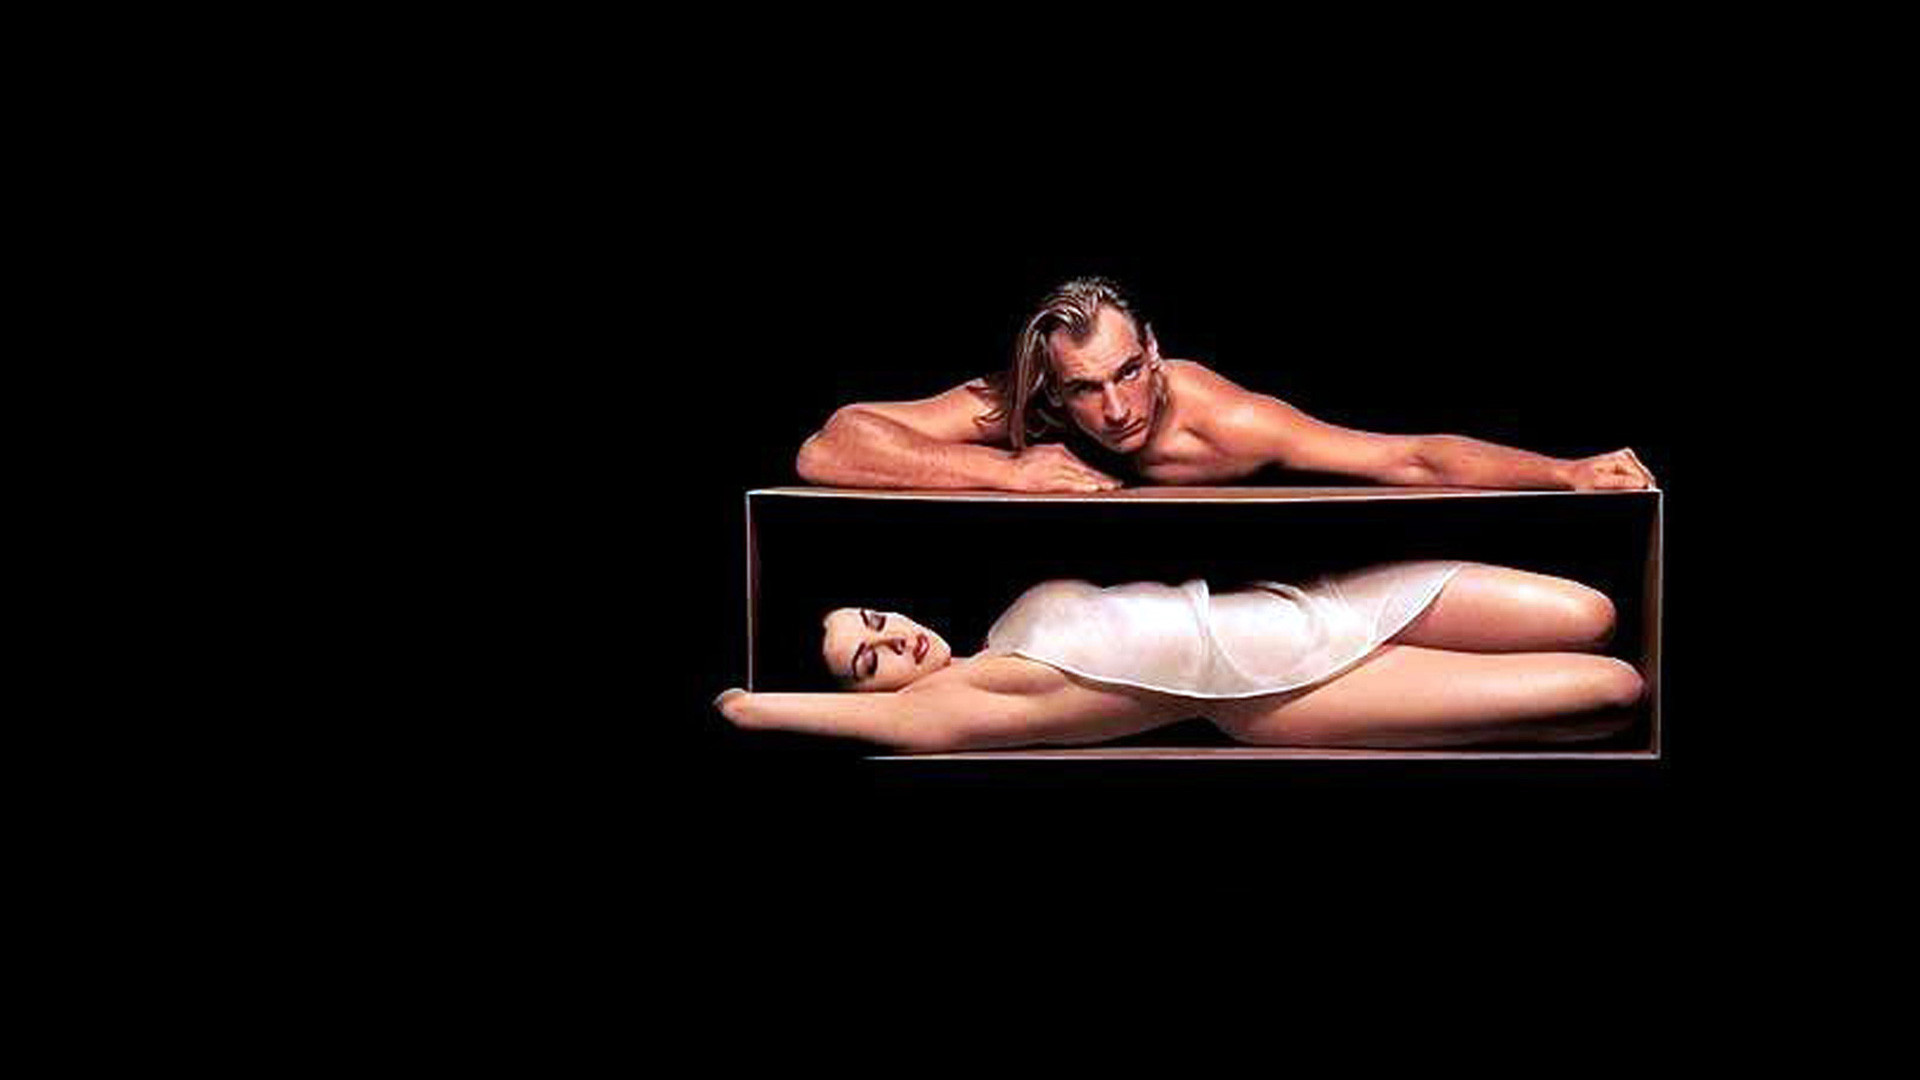 boxing helena images - HD1920×1080